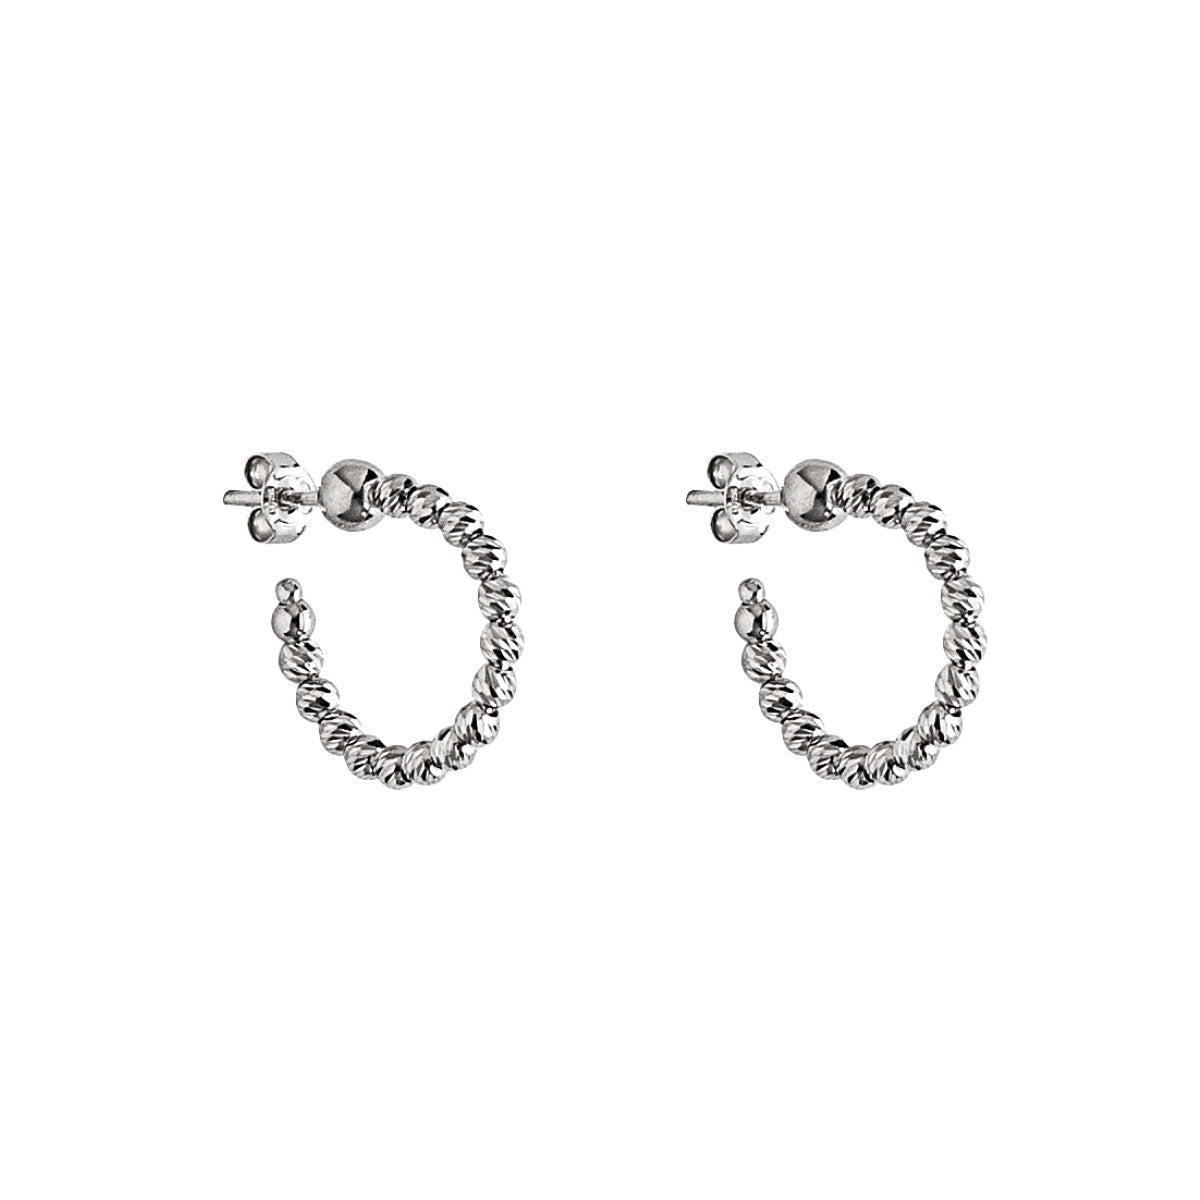 Small Bead Hoop Earrings, .60 Inch, Sterling Silver